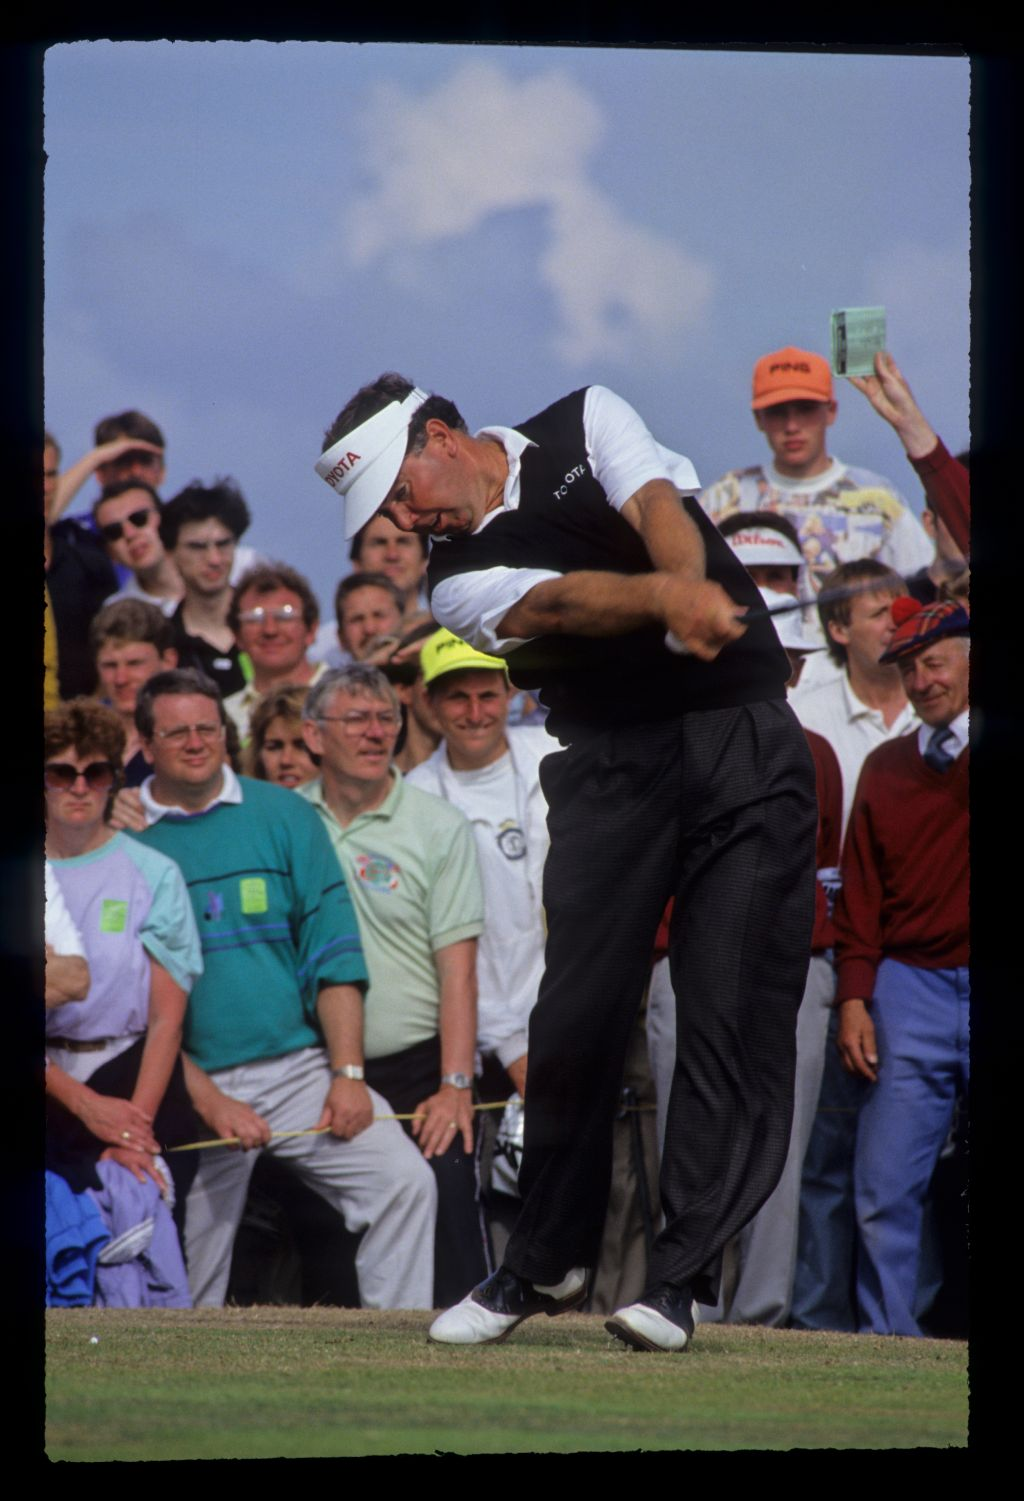 Mark O'Meara following through on the tee during the 1991 Open Championship